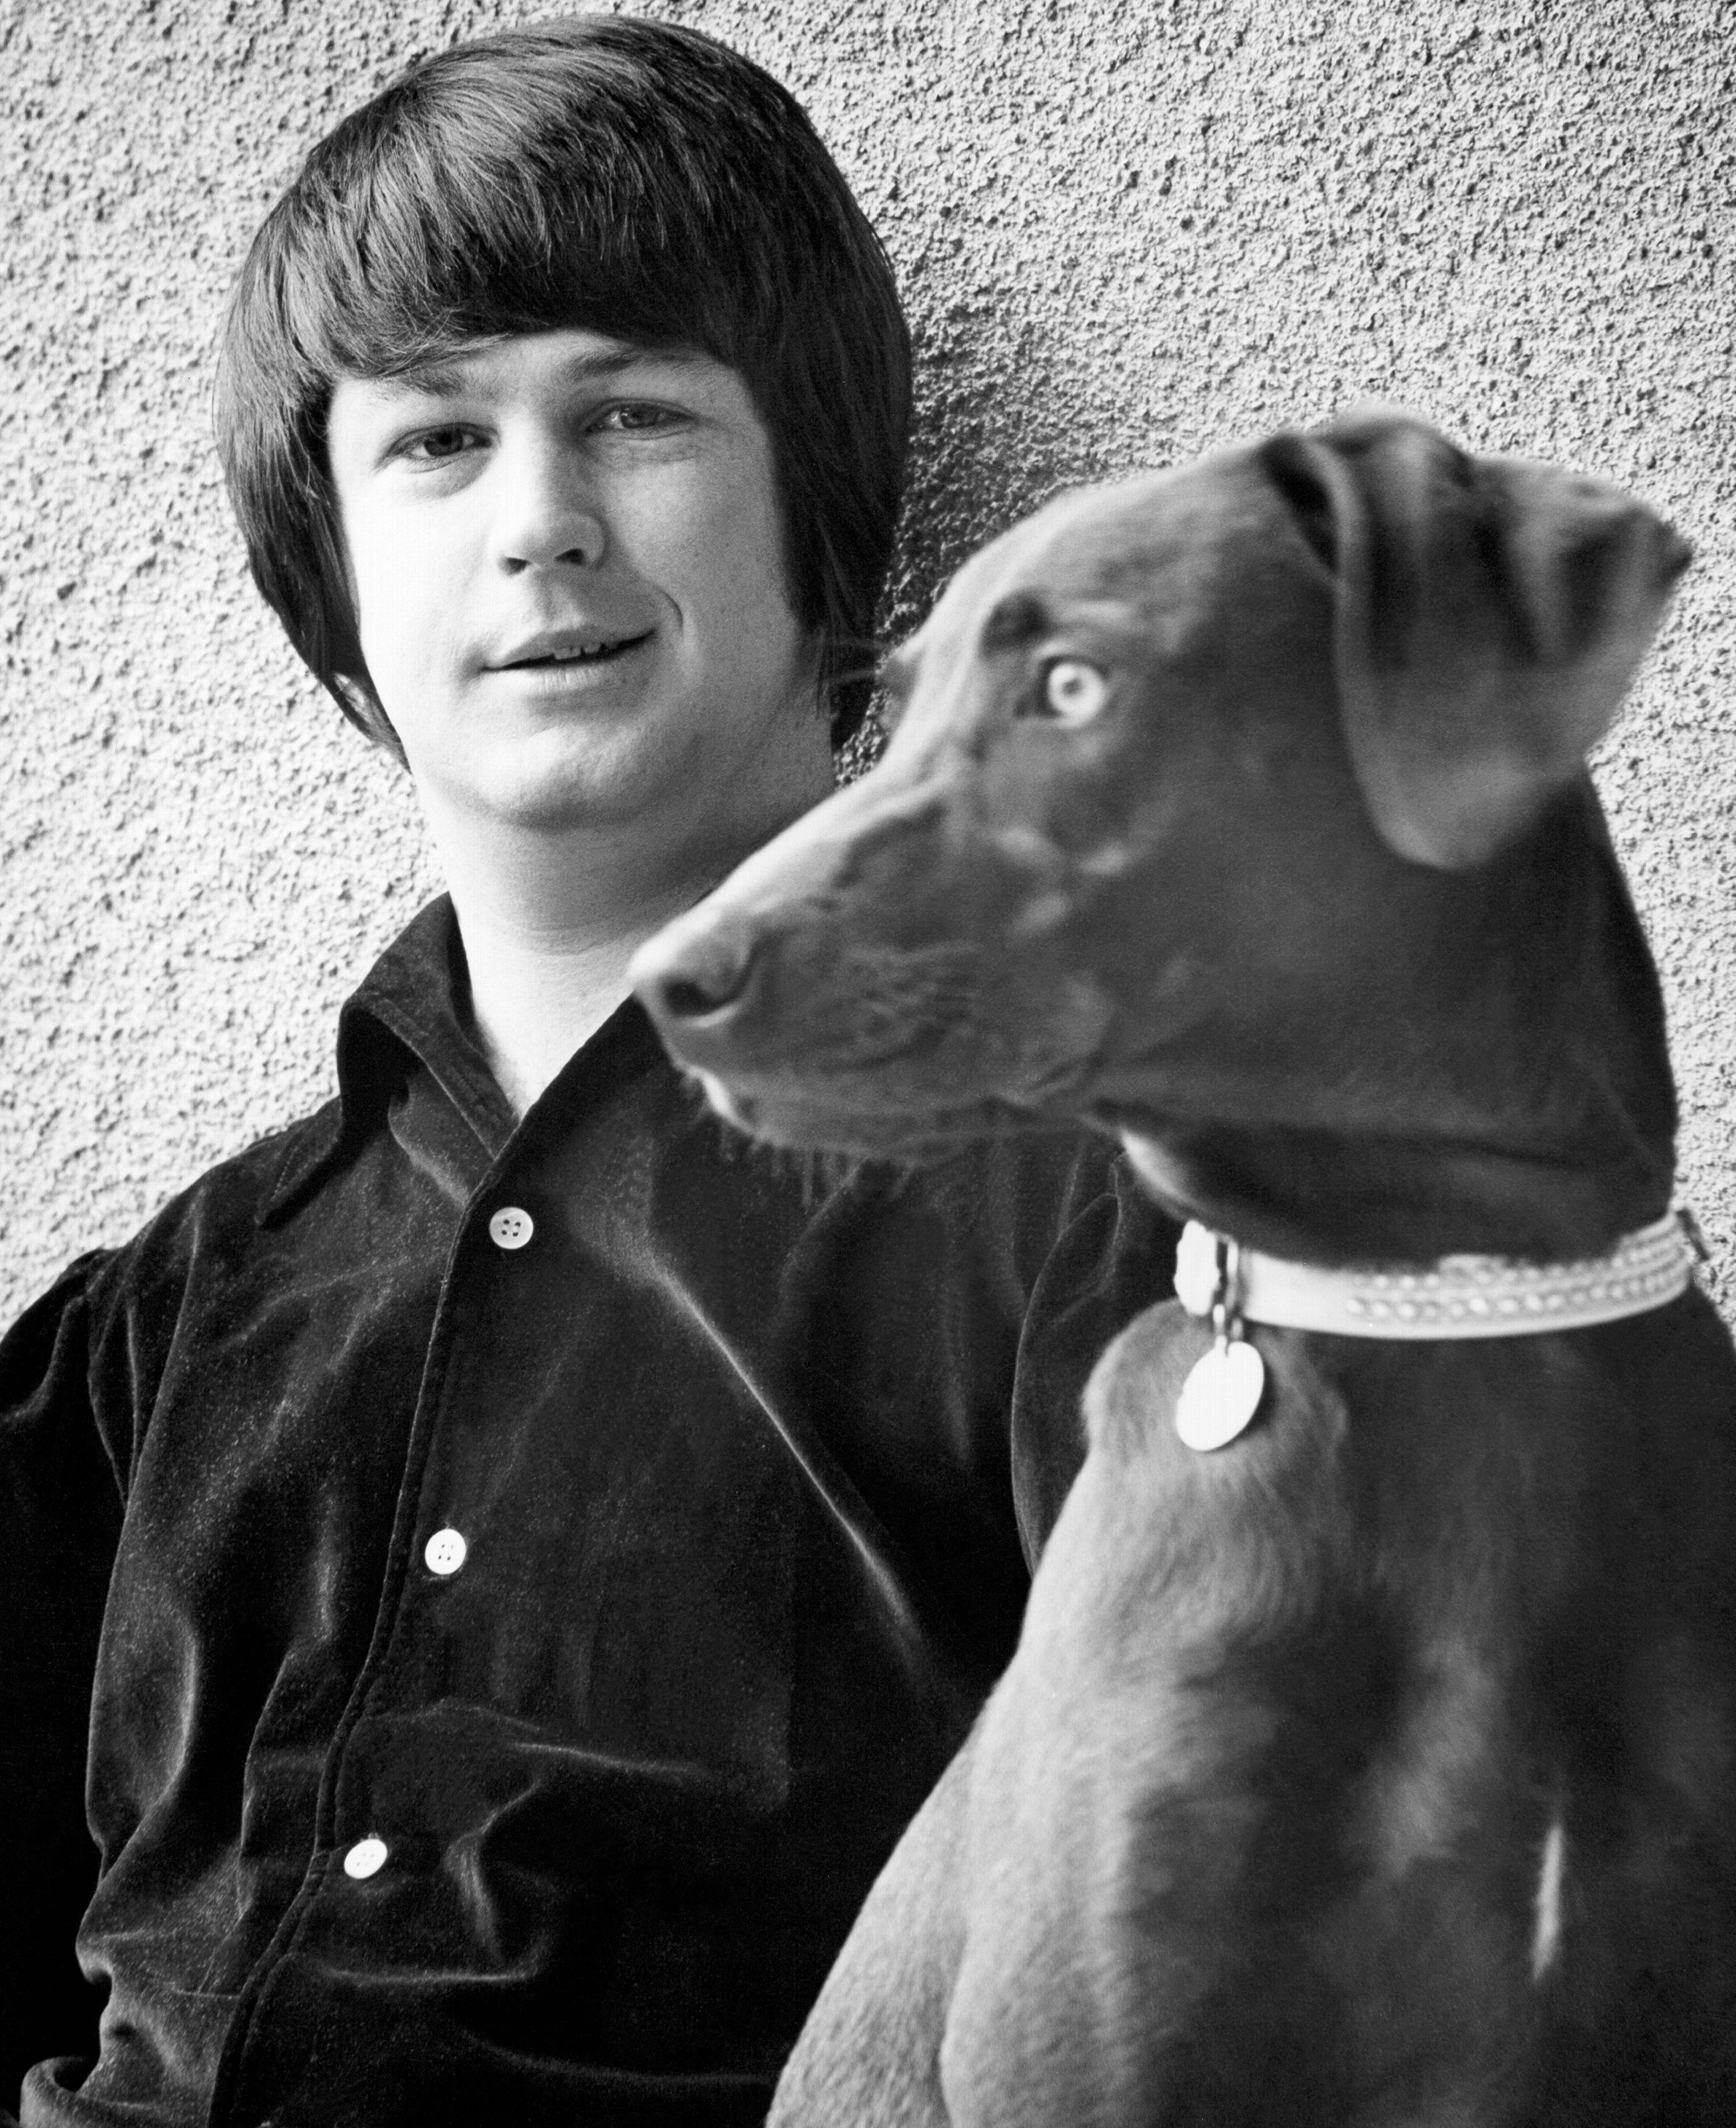 LOS ANGELES - CIRCA 1965: Band leader Brian Wilson of the rock and roll band 'The Beach Boys' poses for a portrait with his dog in circa 1965 in Los Angeles, California. (Photo by Michael Ochs Archives/Getty Images)